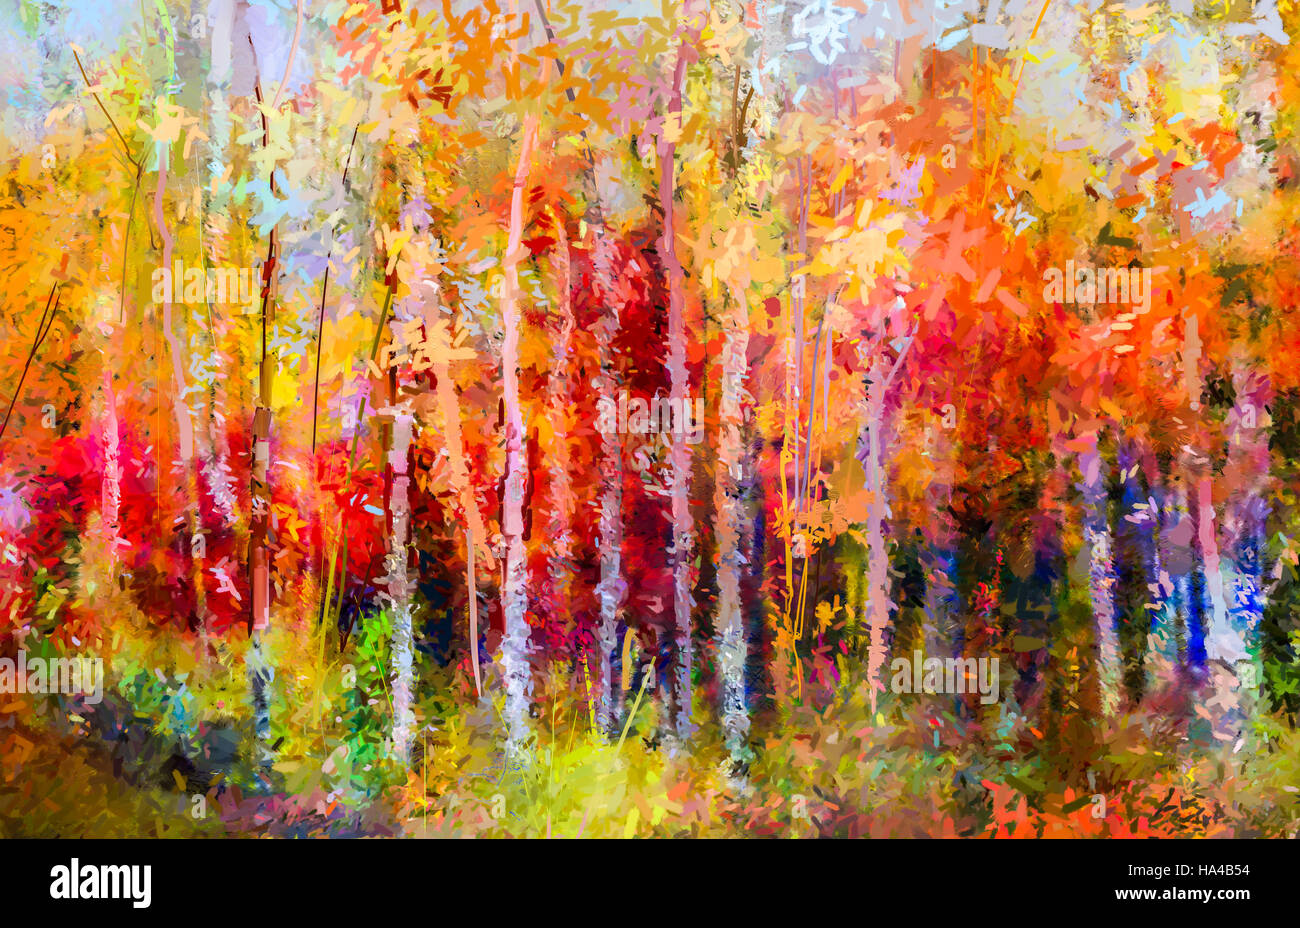 Colorful Fall Scene Wallpaper Oil Painting Landscape Colorful Autumn Trees Semi